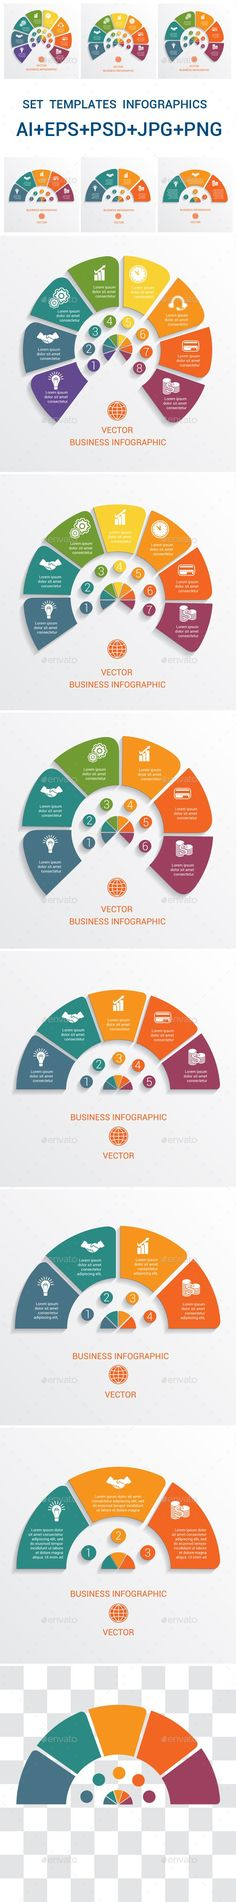 Data Elements For Template #infographics 3,4,5,6,7,8, positions. - #Infographics Download here: https://graphicriver.net/item/data-elements-for-template-infographics-345678-positions/19625589?ref=alena994